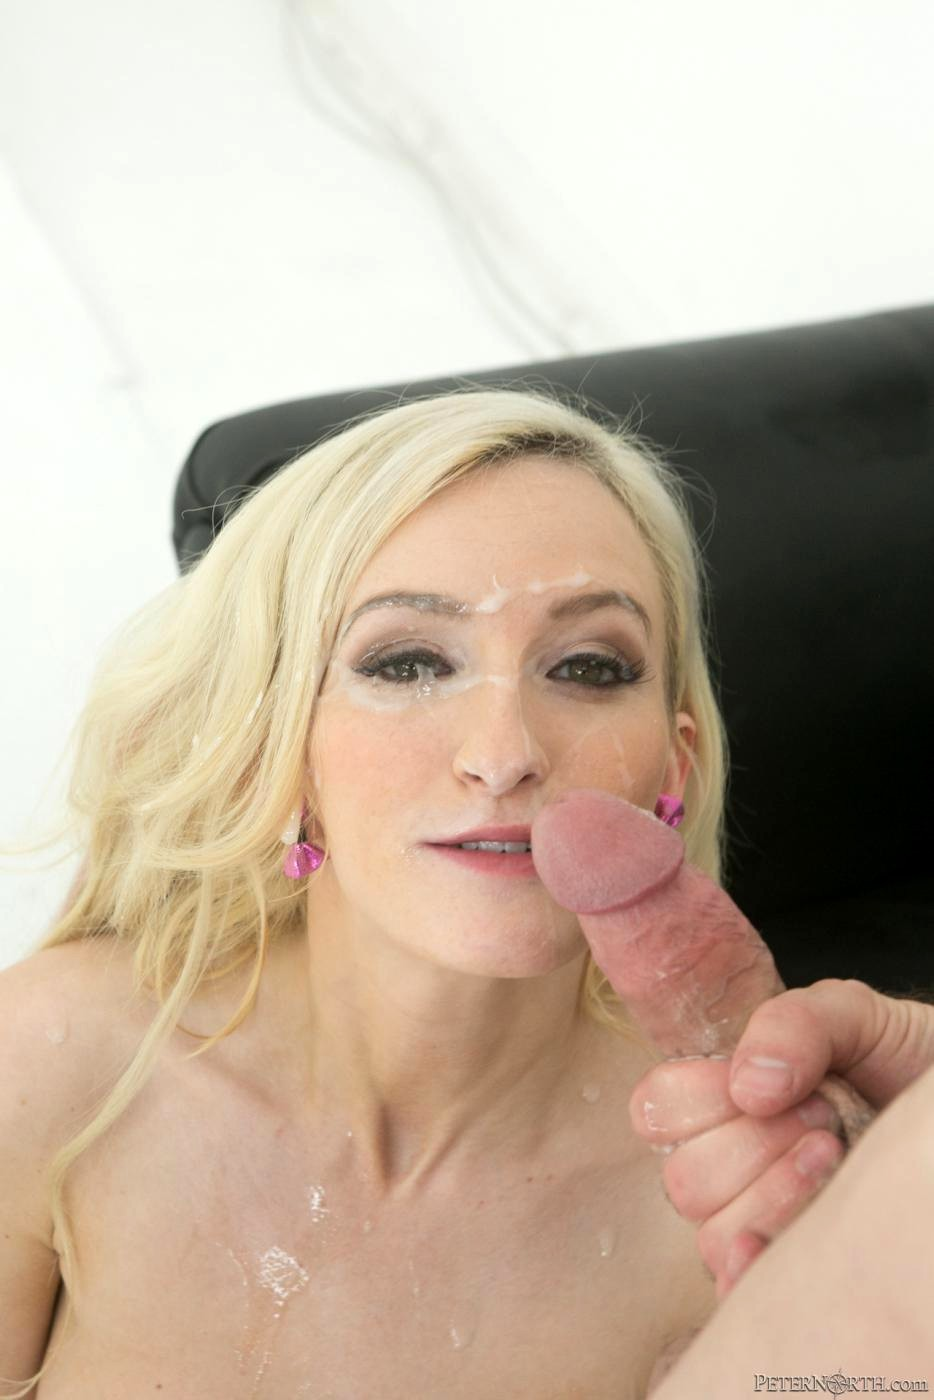 What nice Peter north facial cum shots love the